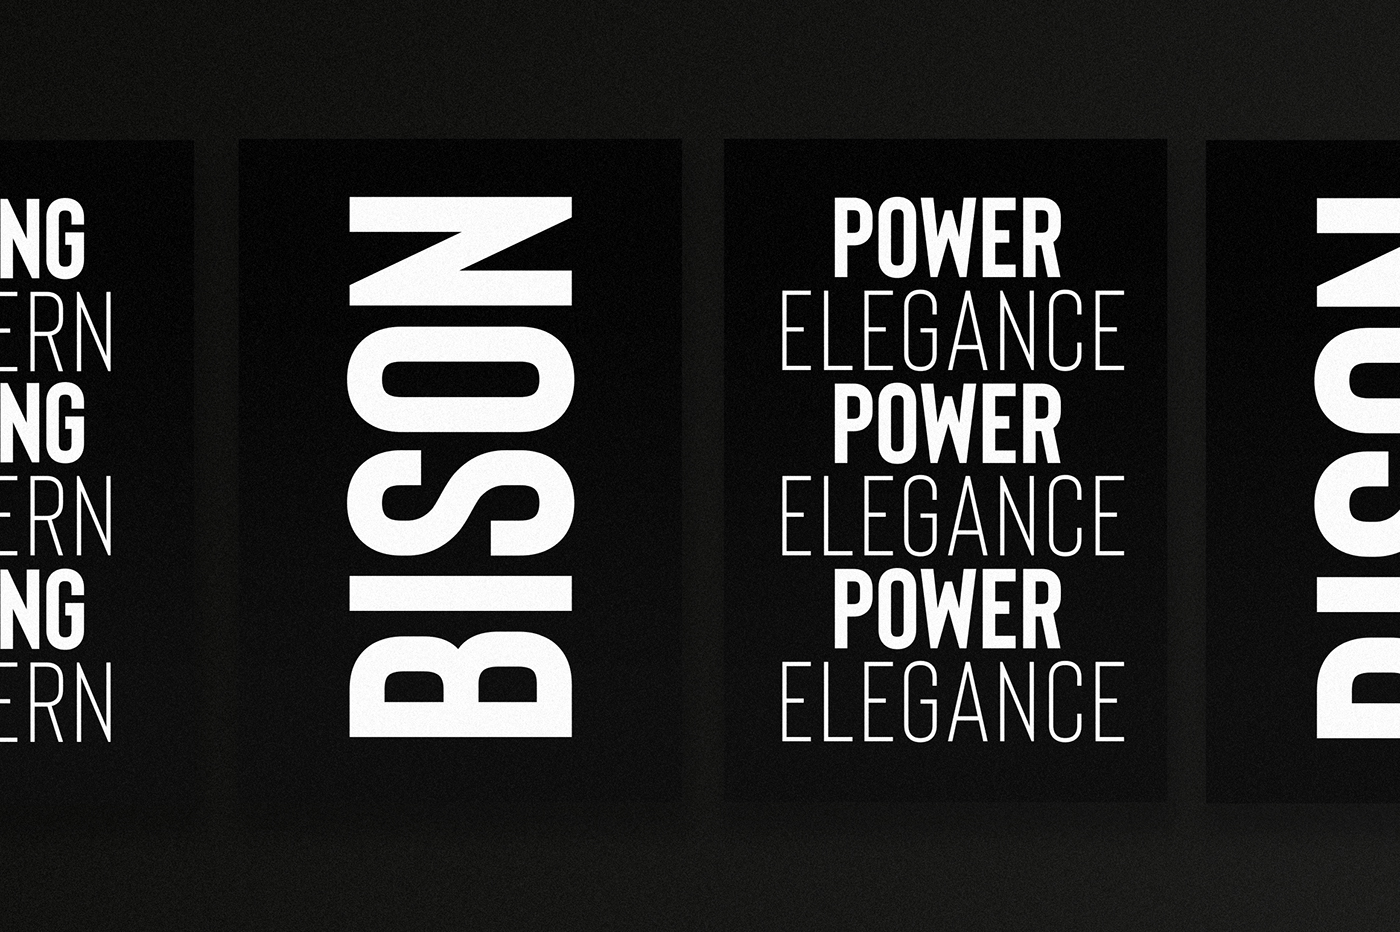 EDGY HIGH FASHION presentation free font Typeface bold condensed Header outline